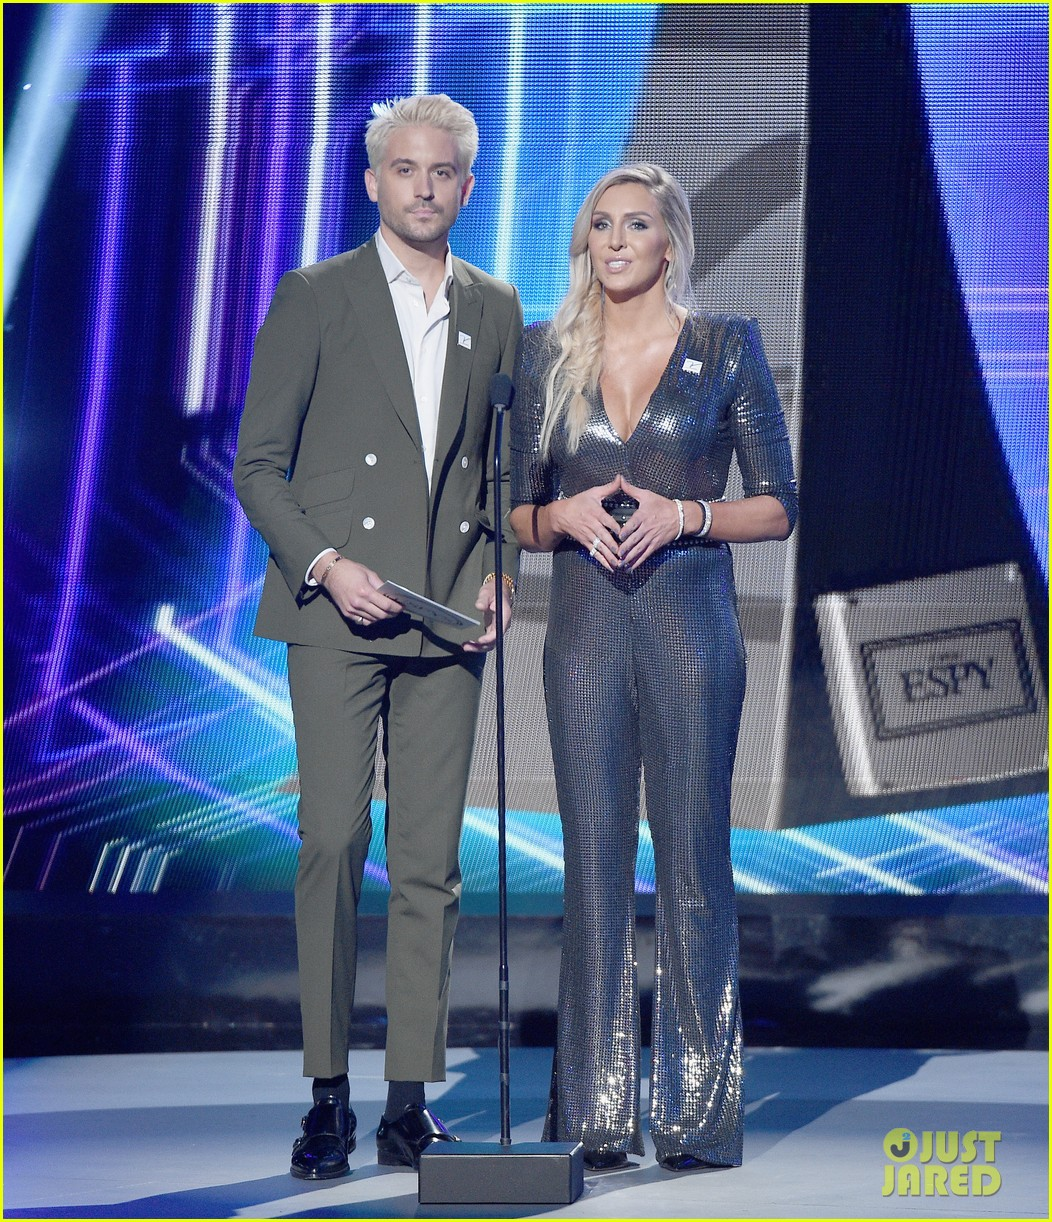 G Eazy Debuts New Blonde Hairstyle At Espys 2018 Photo 4116406